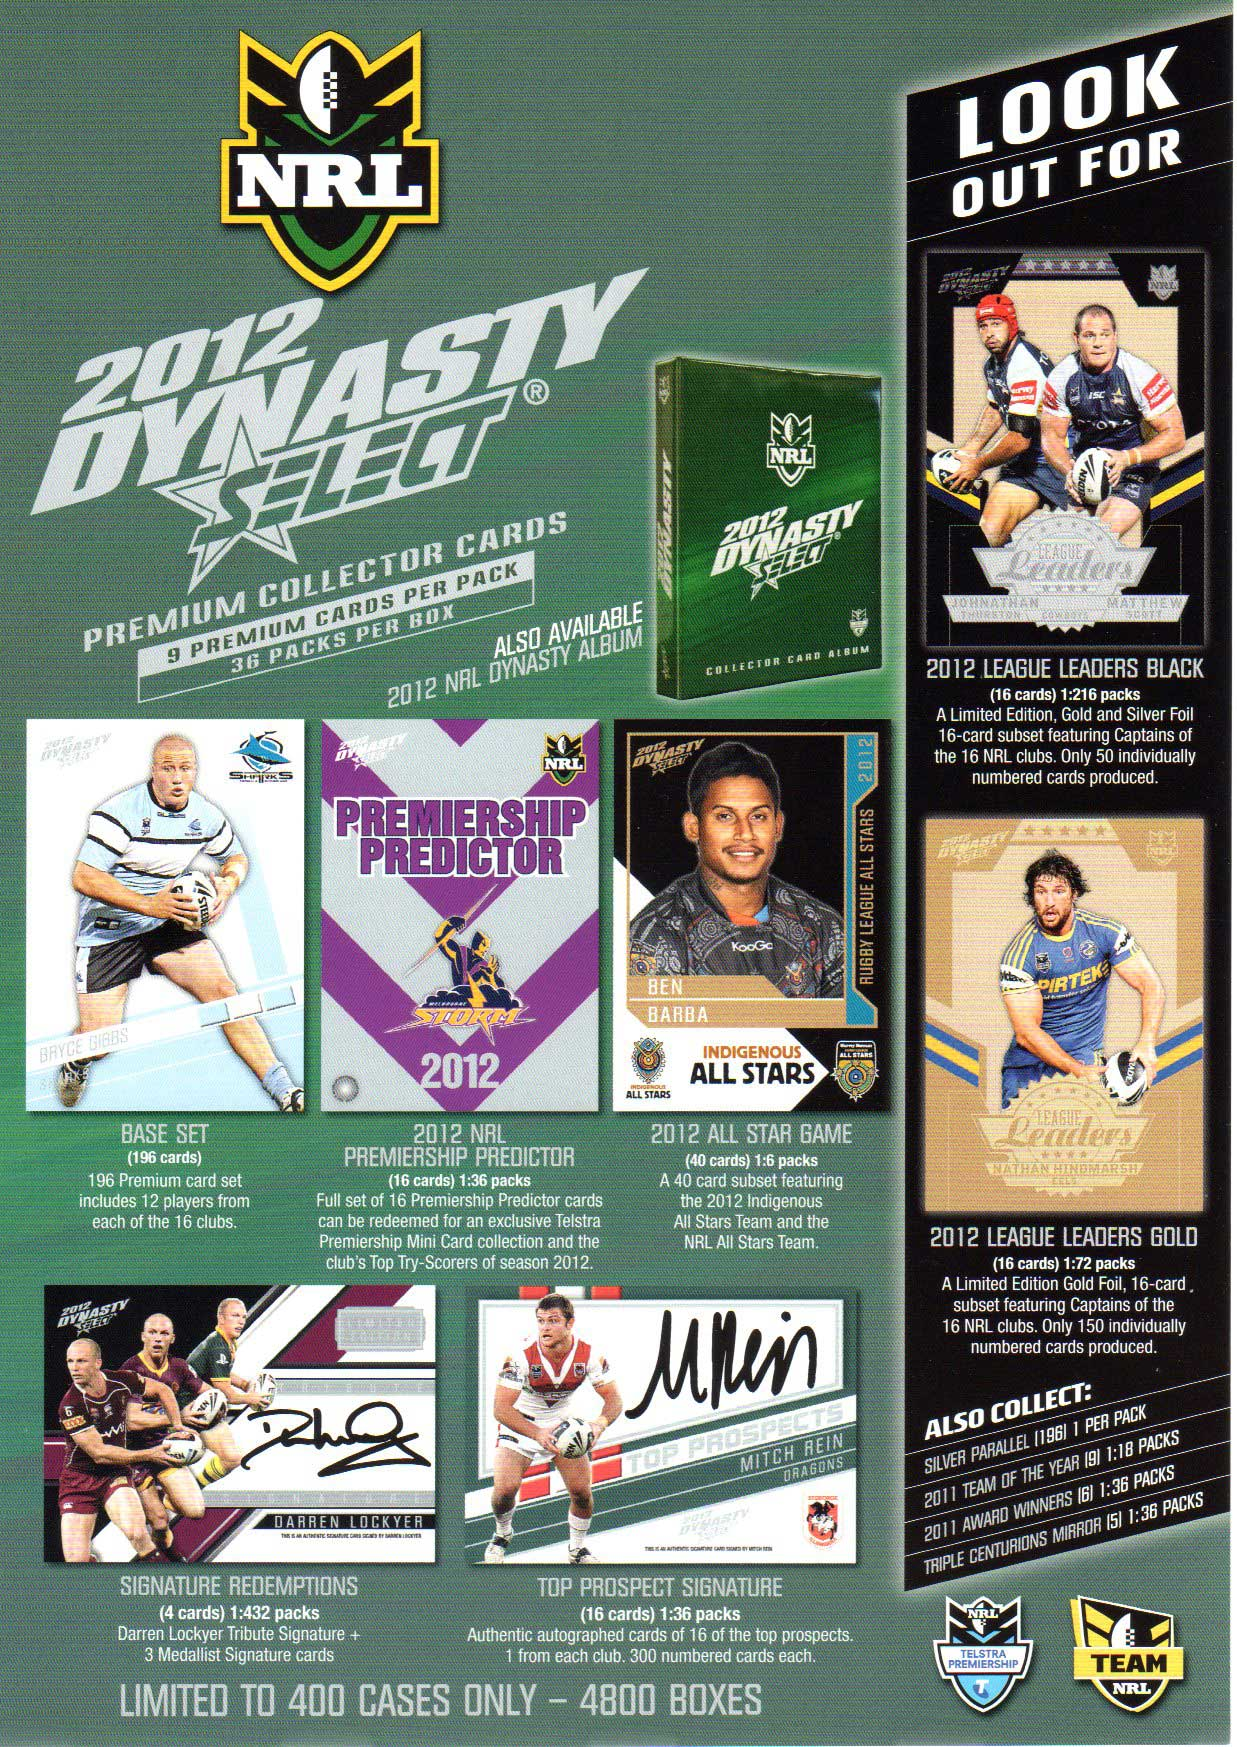 2012 NRL Dynasty Flyer